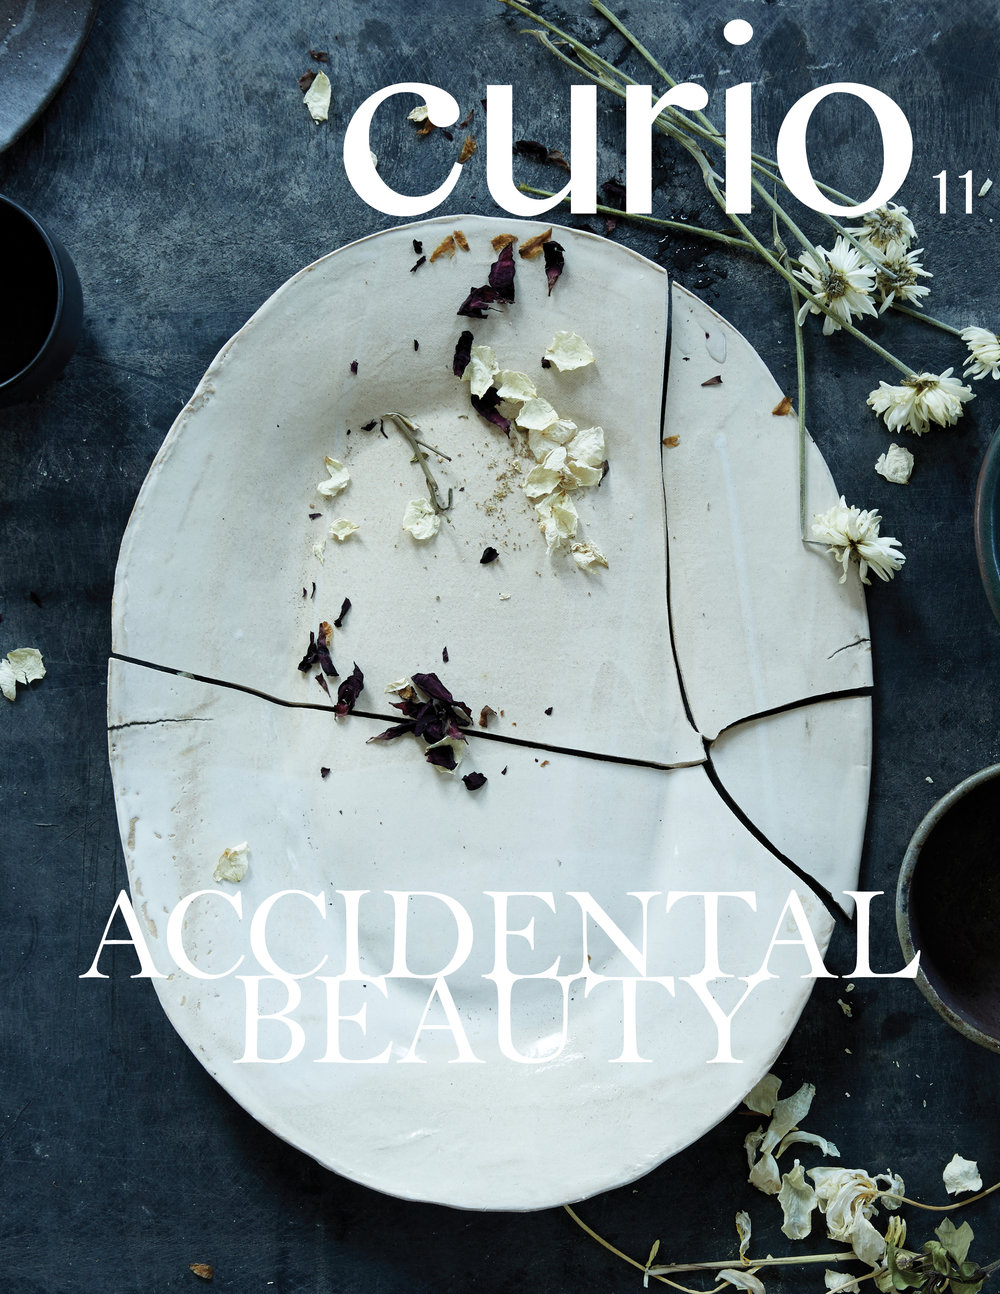 ISSUE 11: ACCIDENTAL BEAUTY